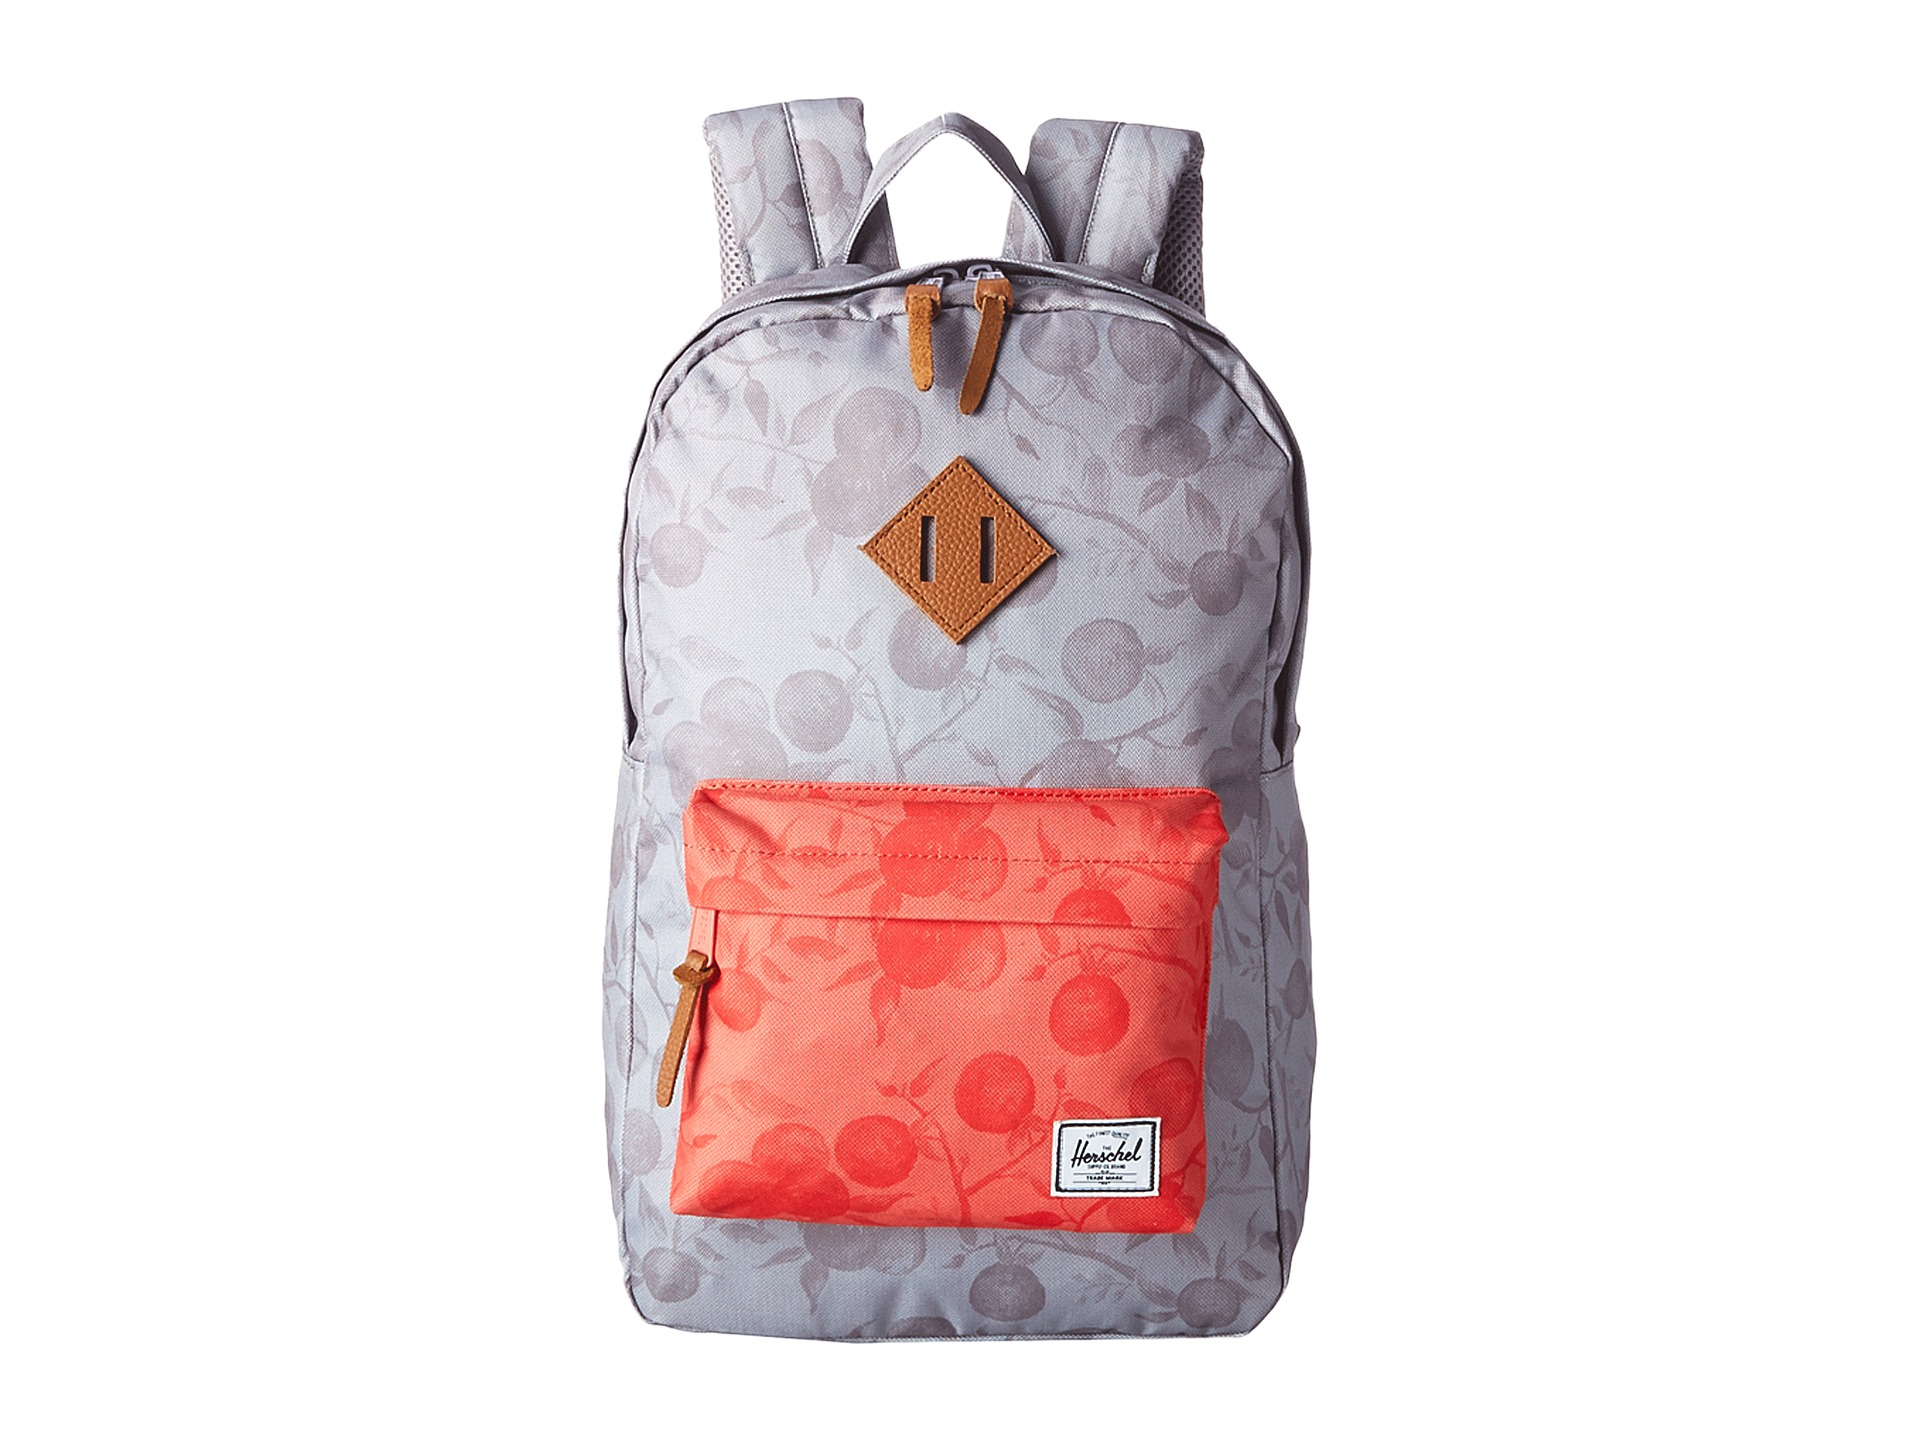 Lyst - Herschel Supply Co. Heritage Mid-Volume in Gray fc0676d22edf7